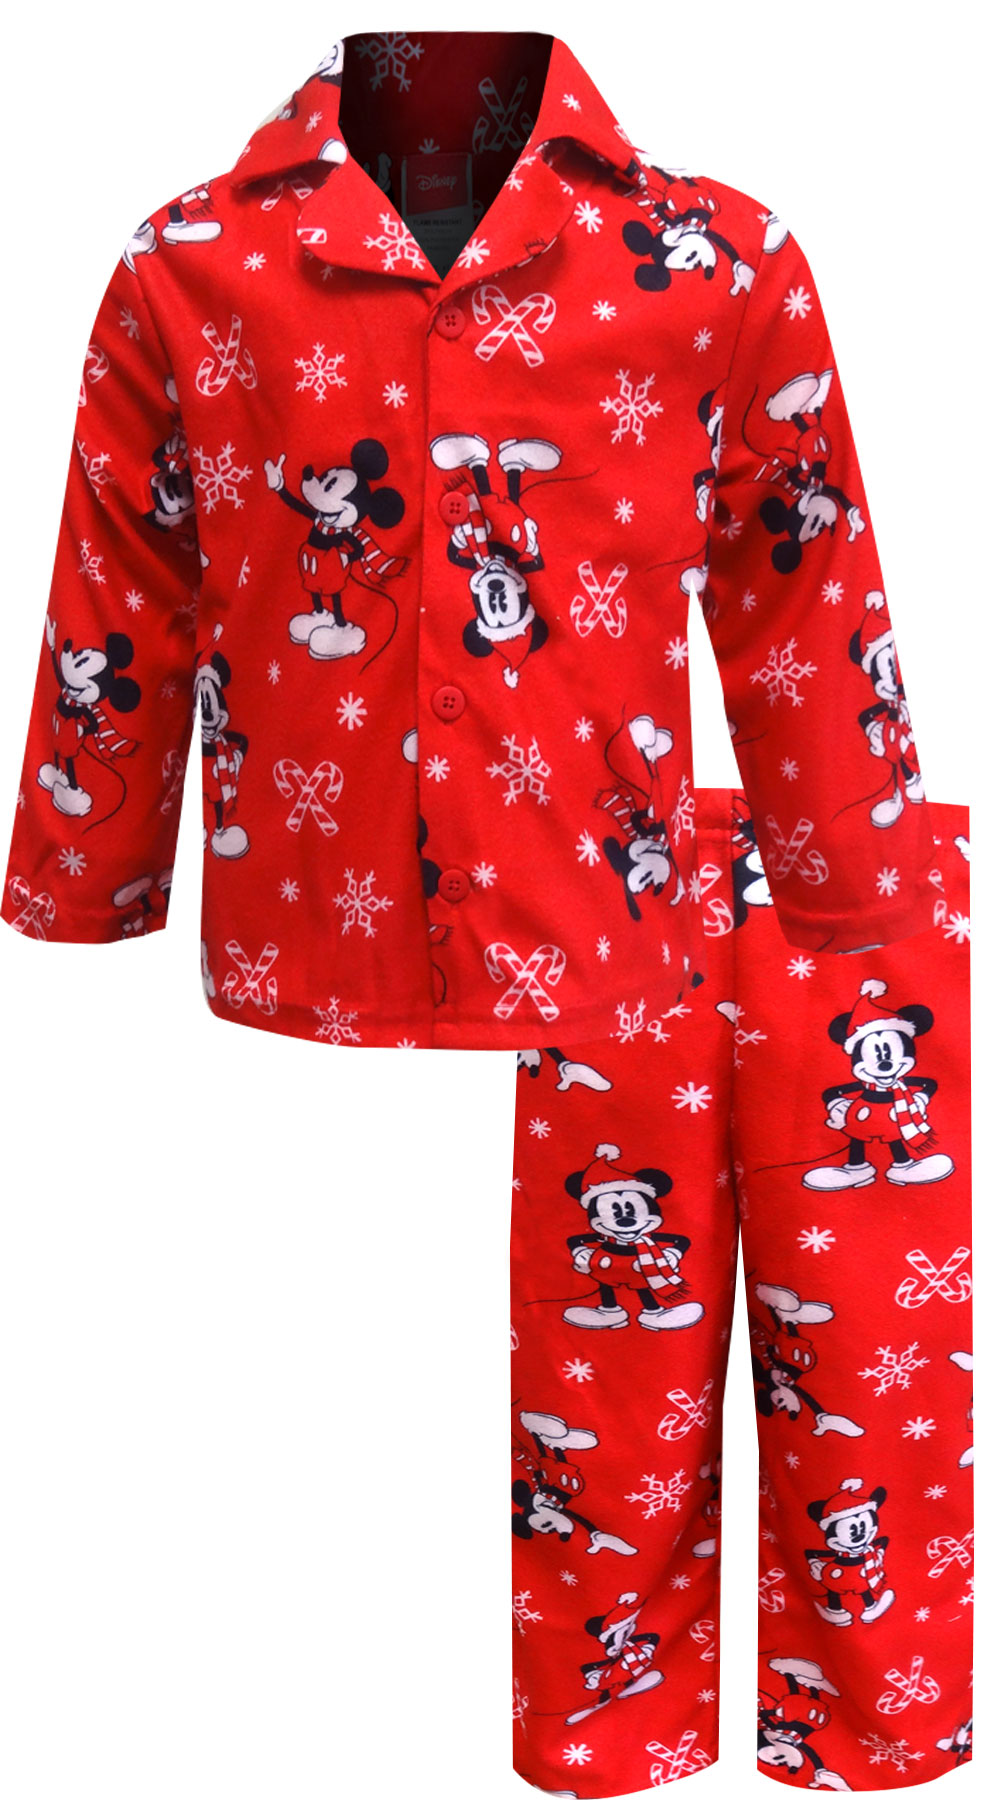 Image of Disney Mickey Mouse Christmas Flannel Toddler Pajamas for boys